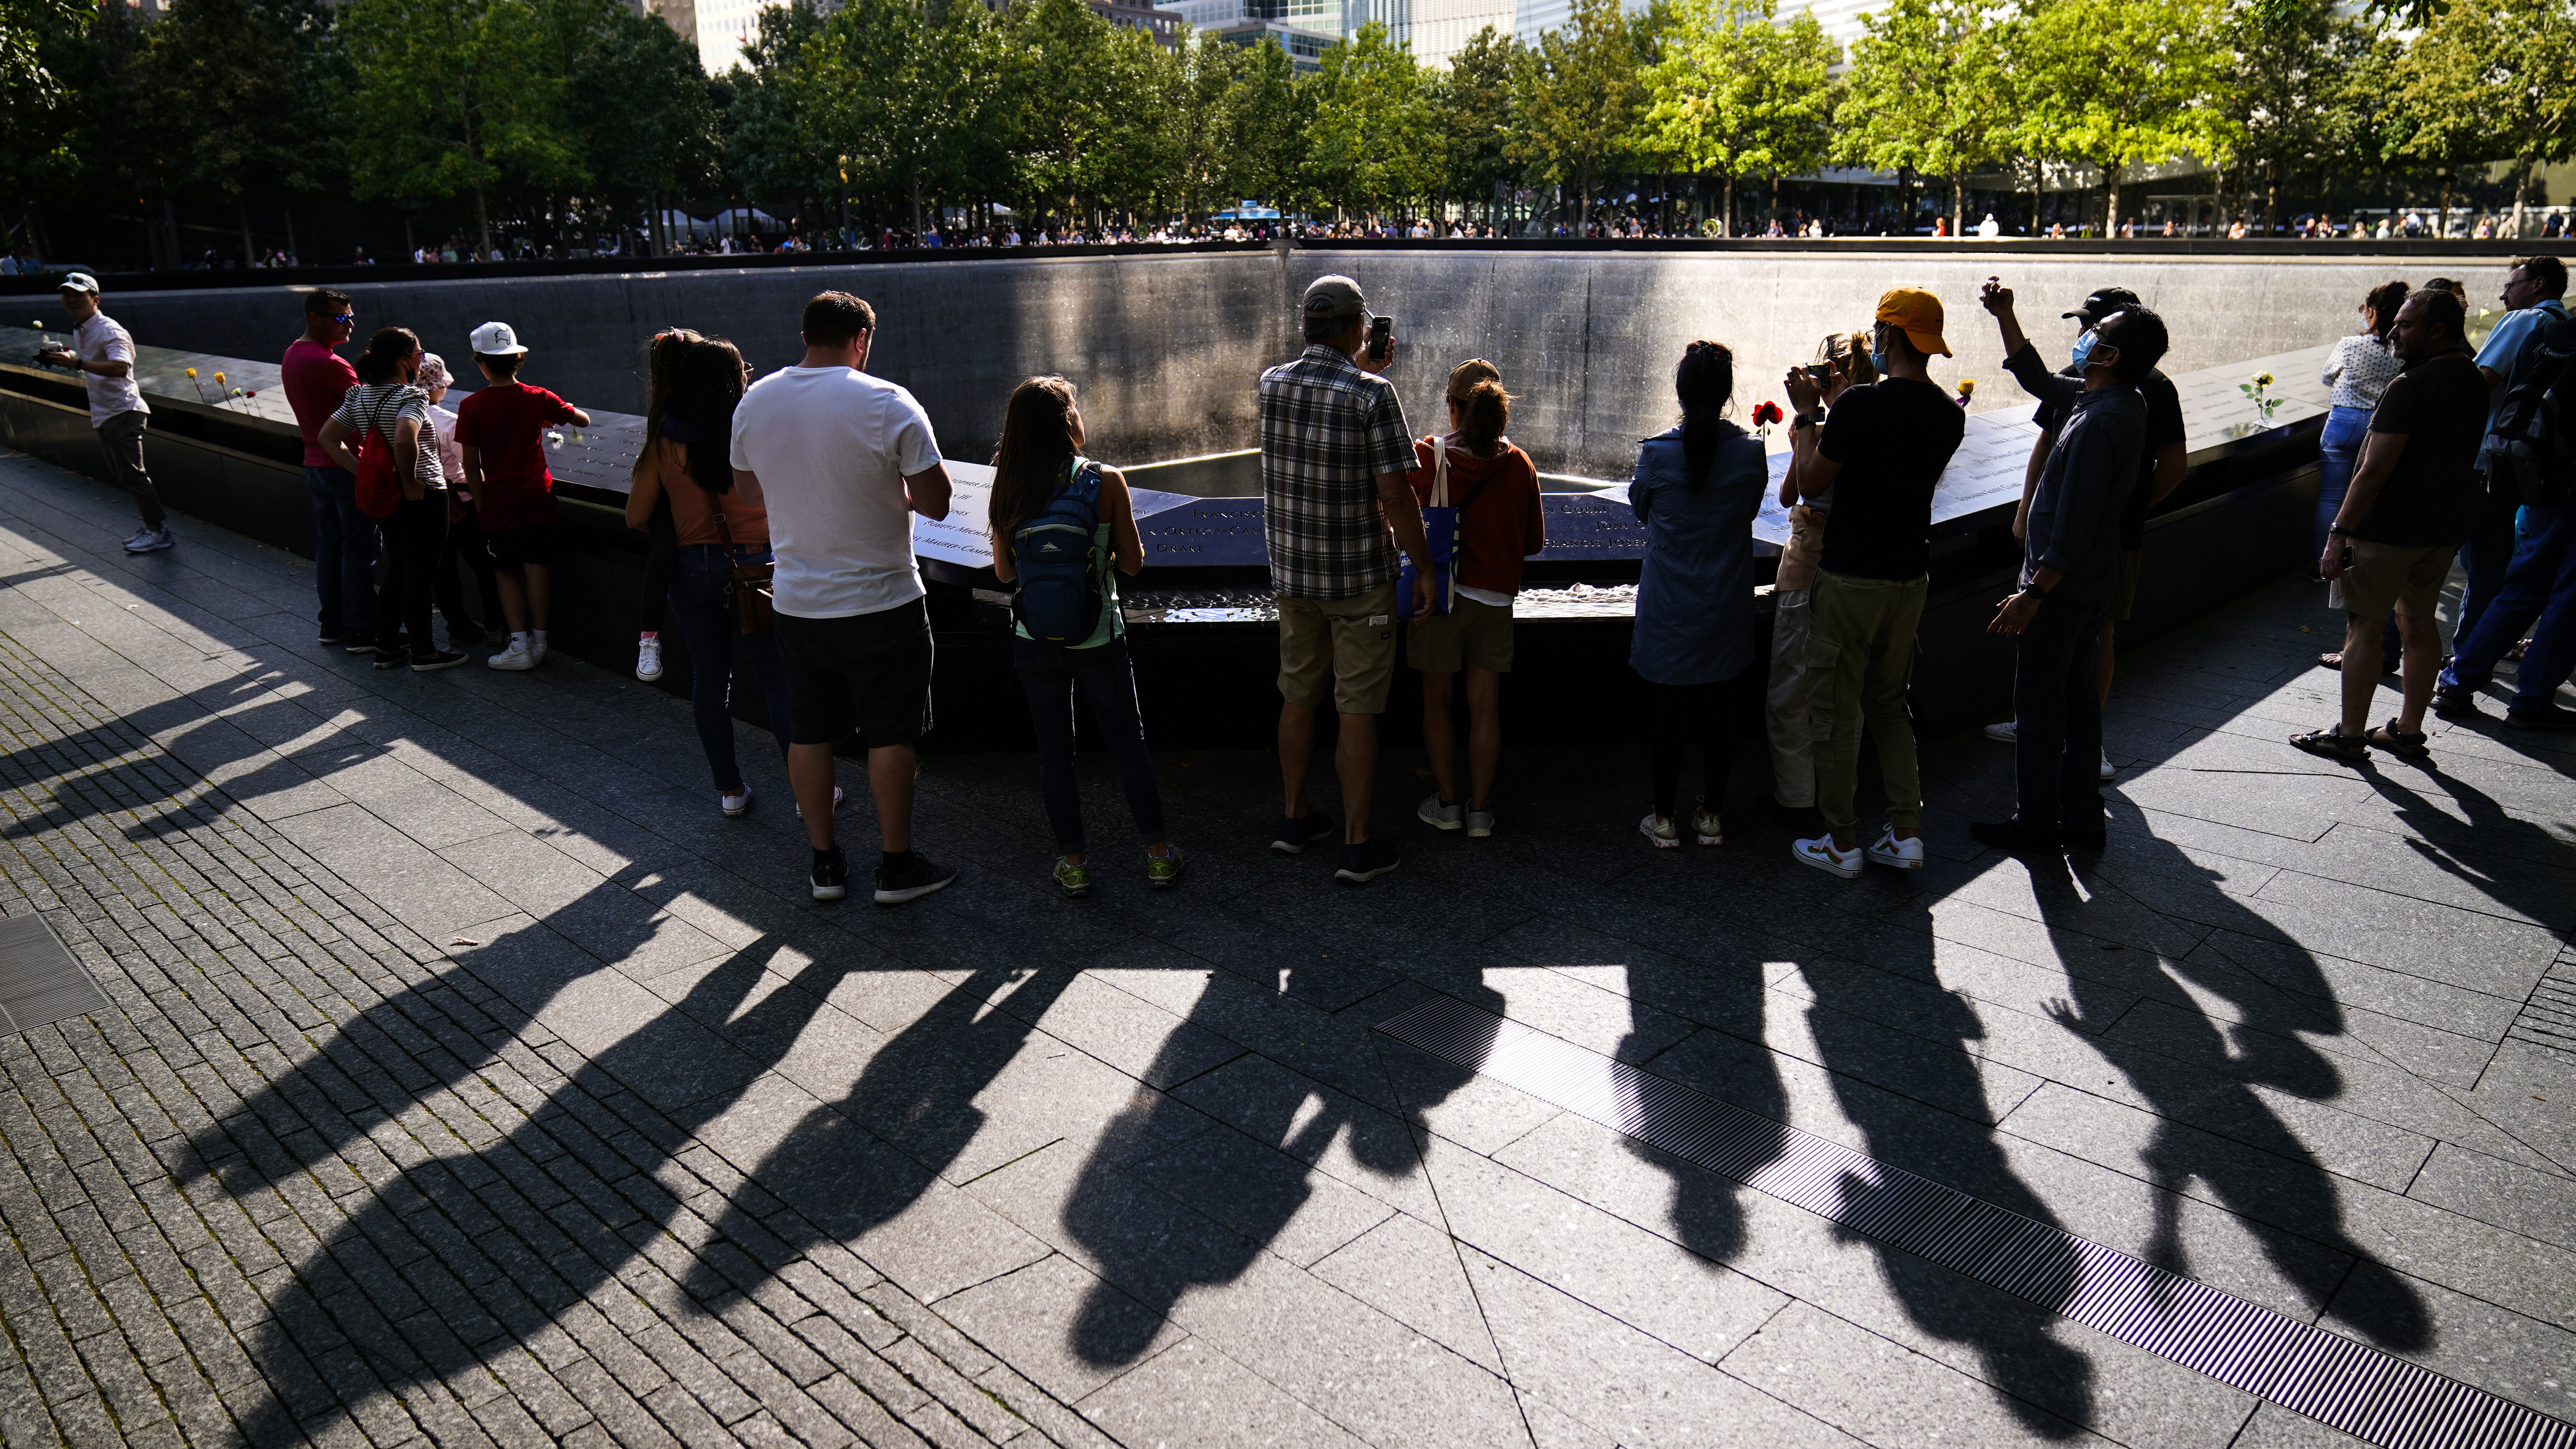 Police officers stand guard at the National September 11 Memorial and Museum